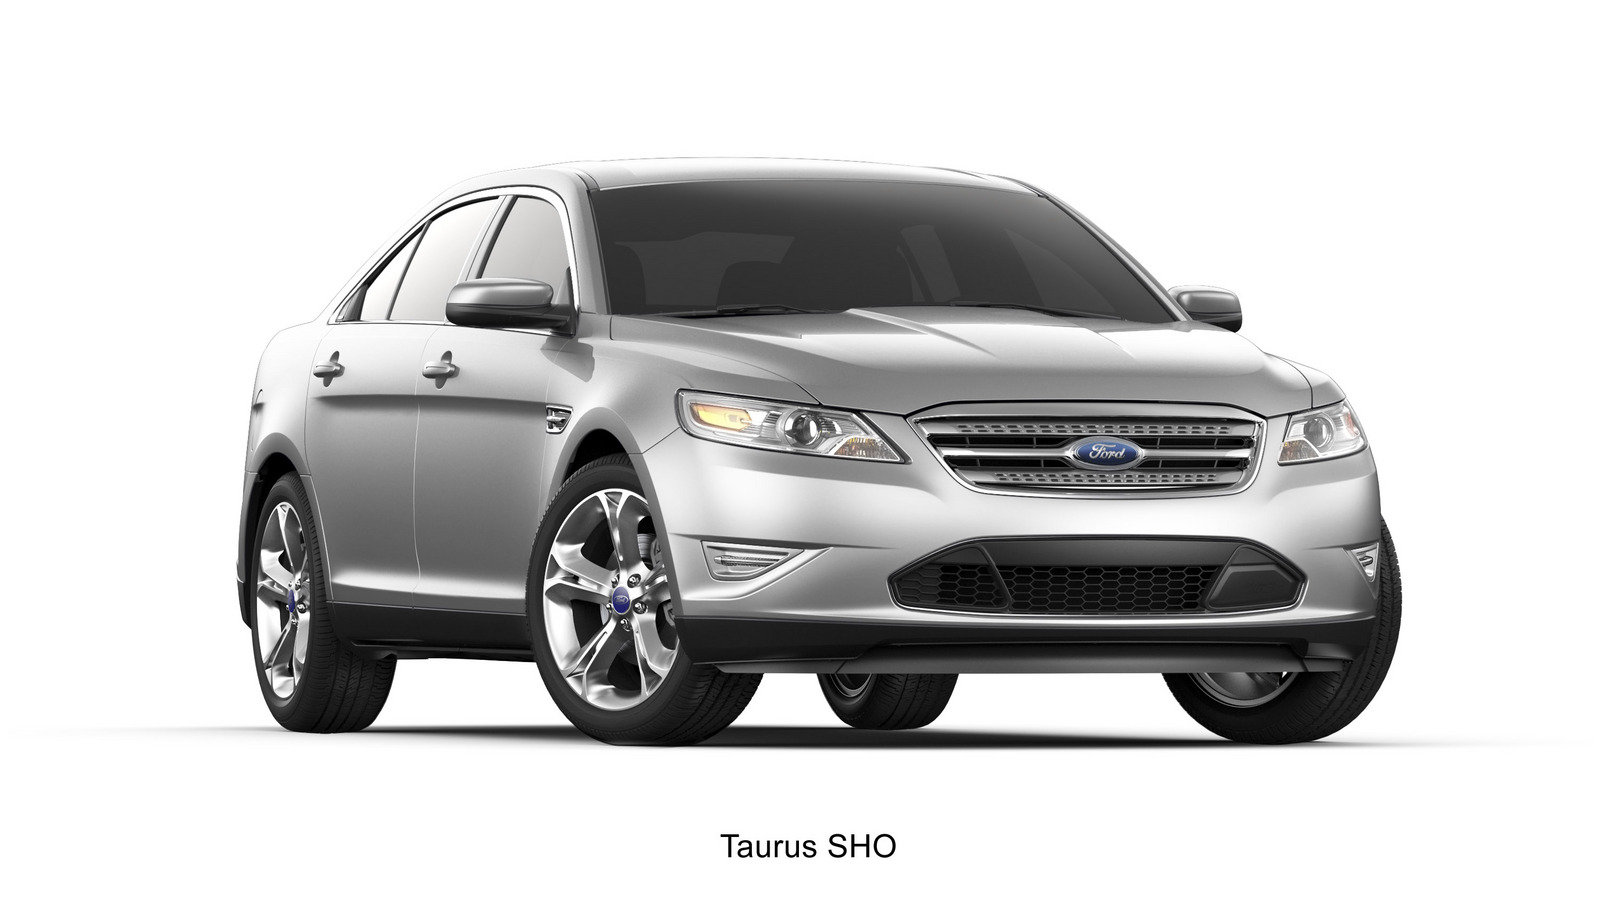 pin ford taurus sho pictures on pinterest. Black Bedroom Furniture Sets. Home Design Ideas